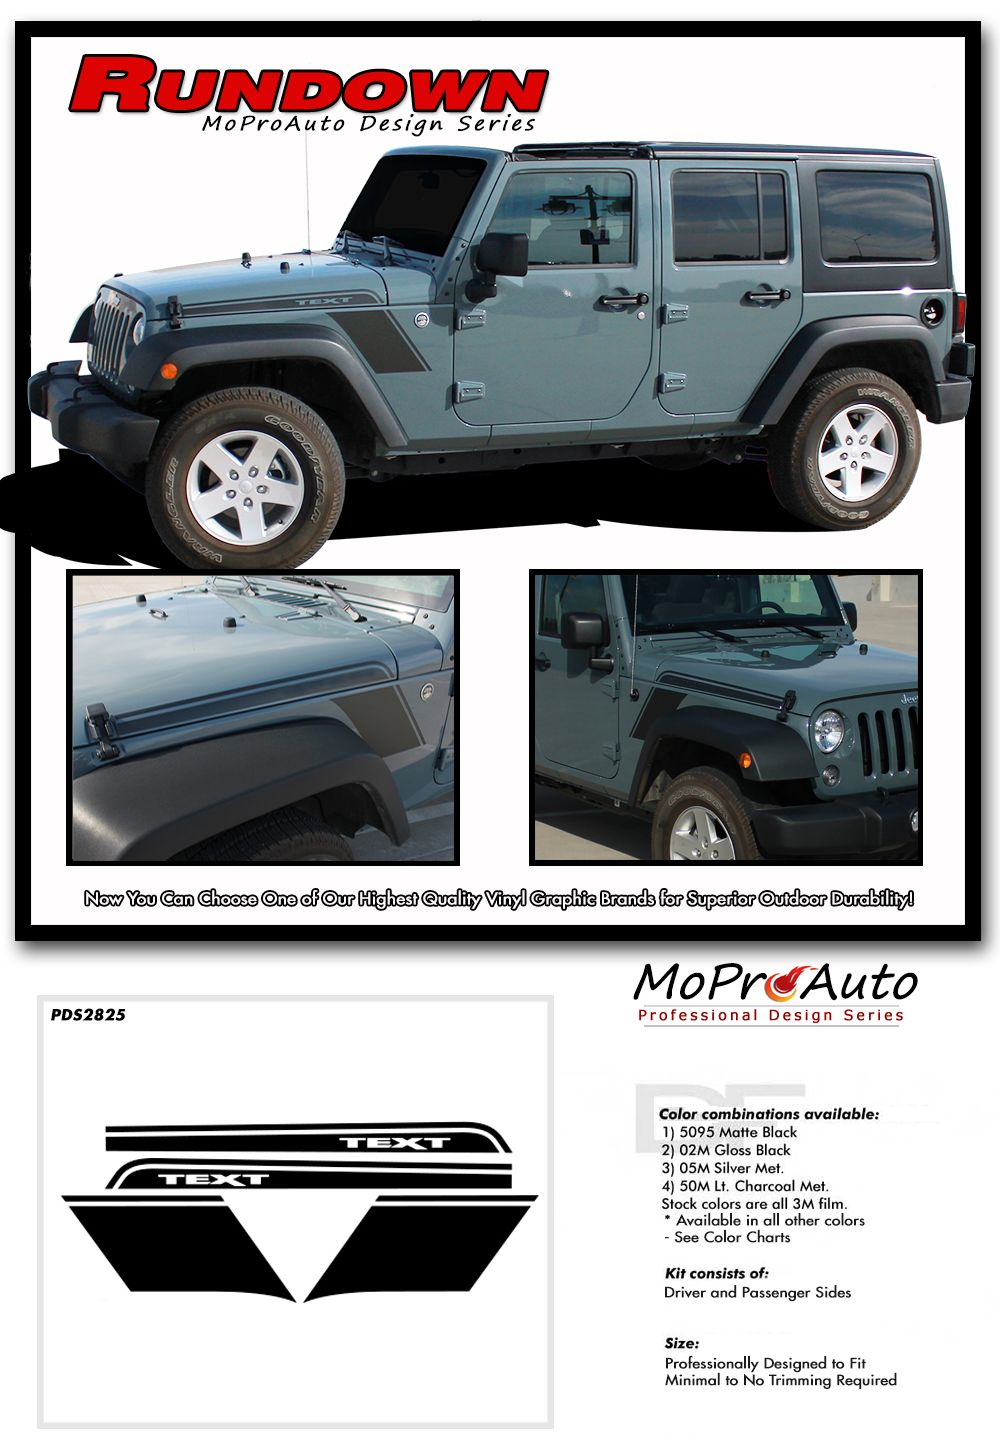 Rundown Jeep Wrangler Hood To Fender Vinyl Graphics Decal Stripe Kit For 2007 2008 2009 2010 2011 2012 2013 2014 2015 2016 2017 Models Jeep Wrangler Jeep Vinyl Graphics